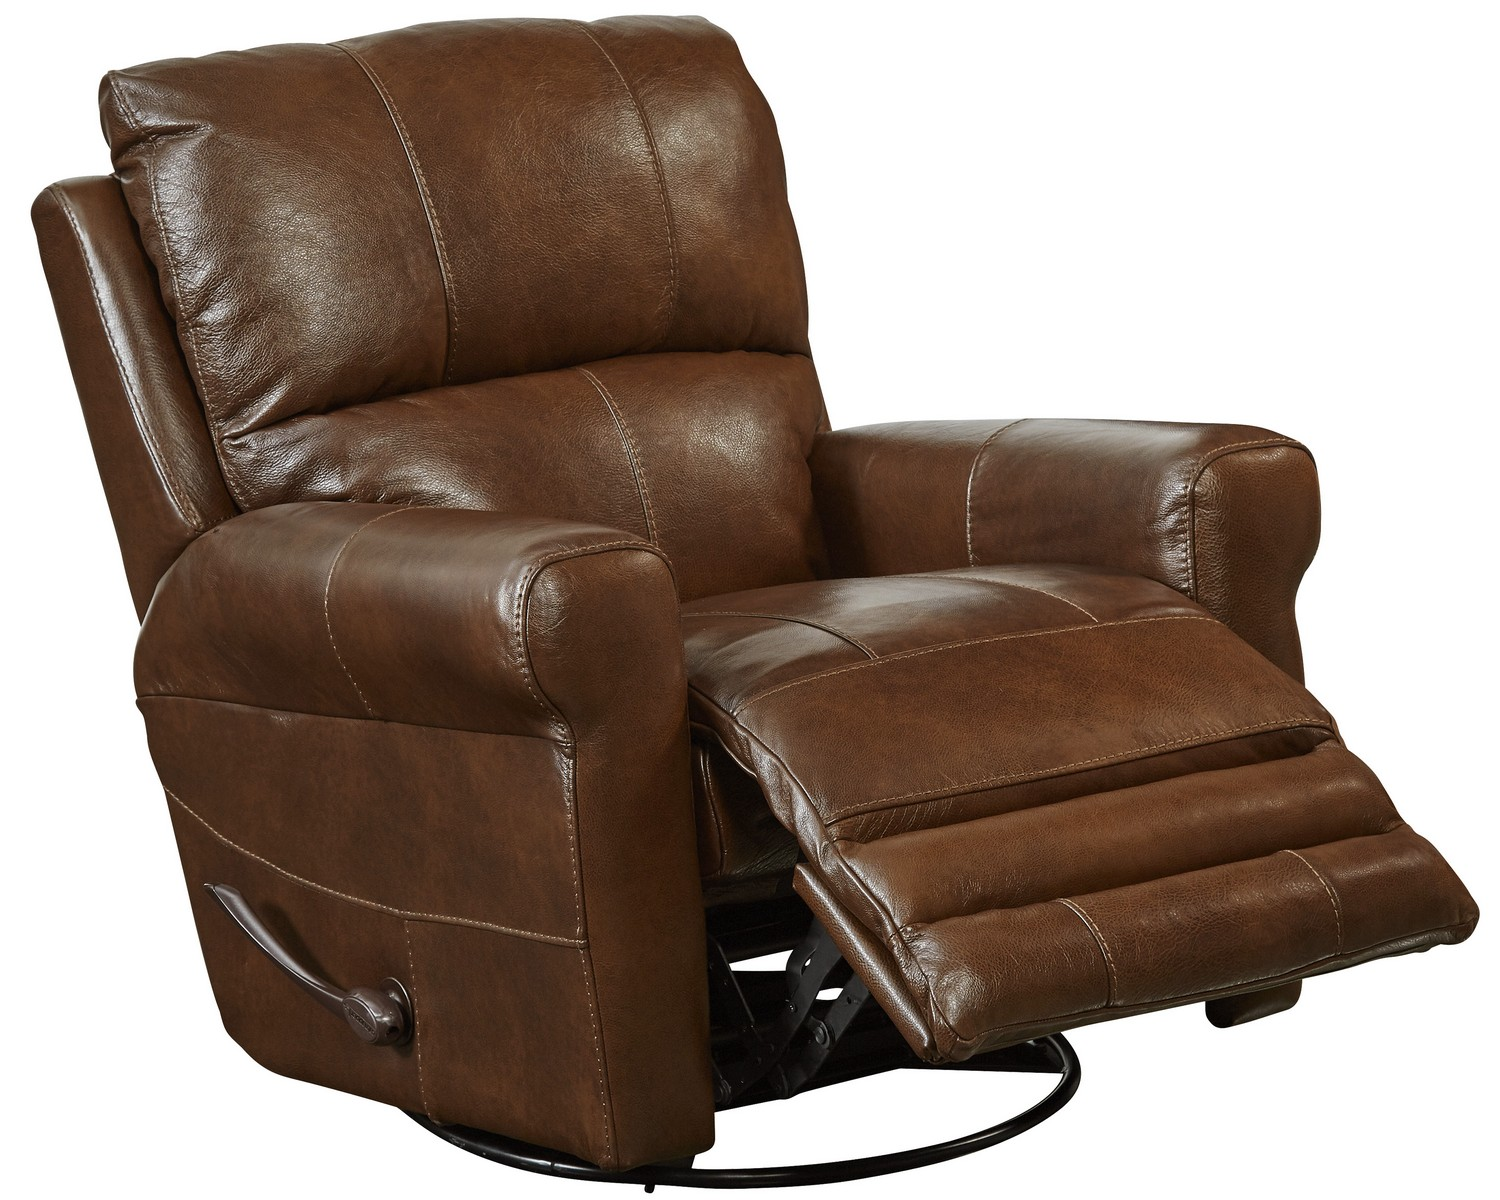 CatNapper Hoffner Top Grain Leather Touch Power Lay Flat Recliner - Chestnut